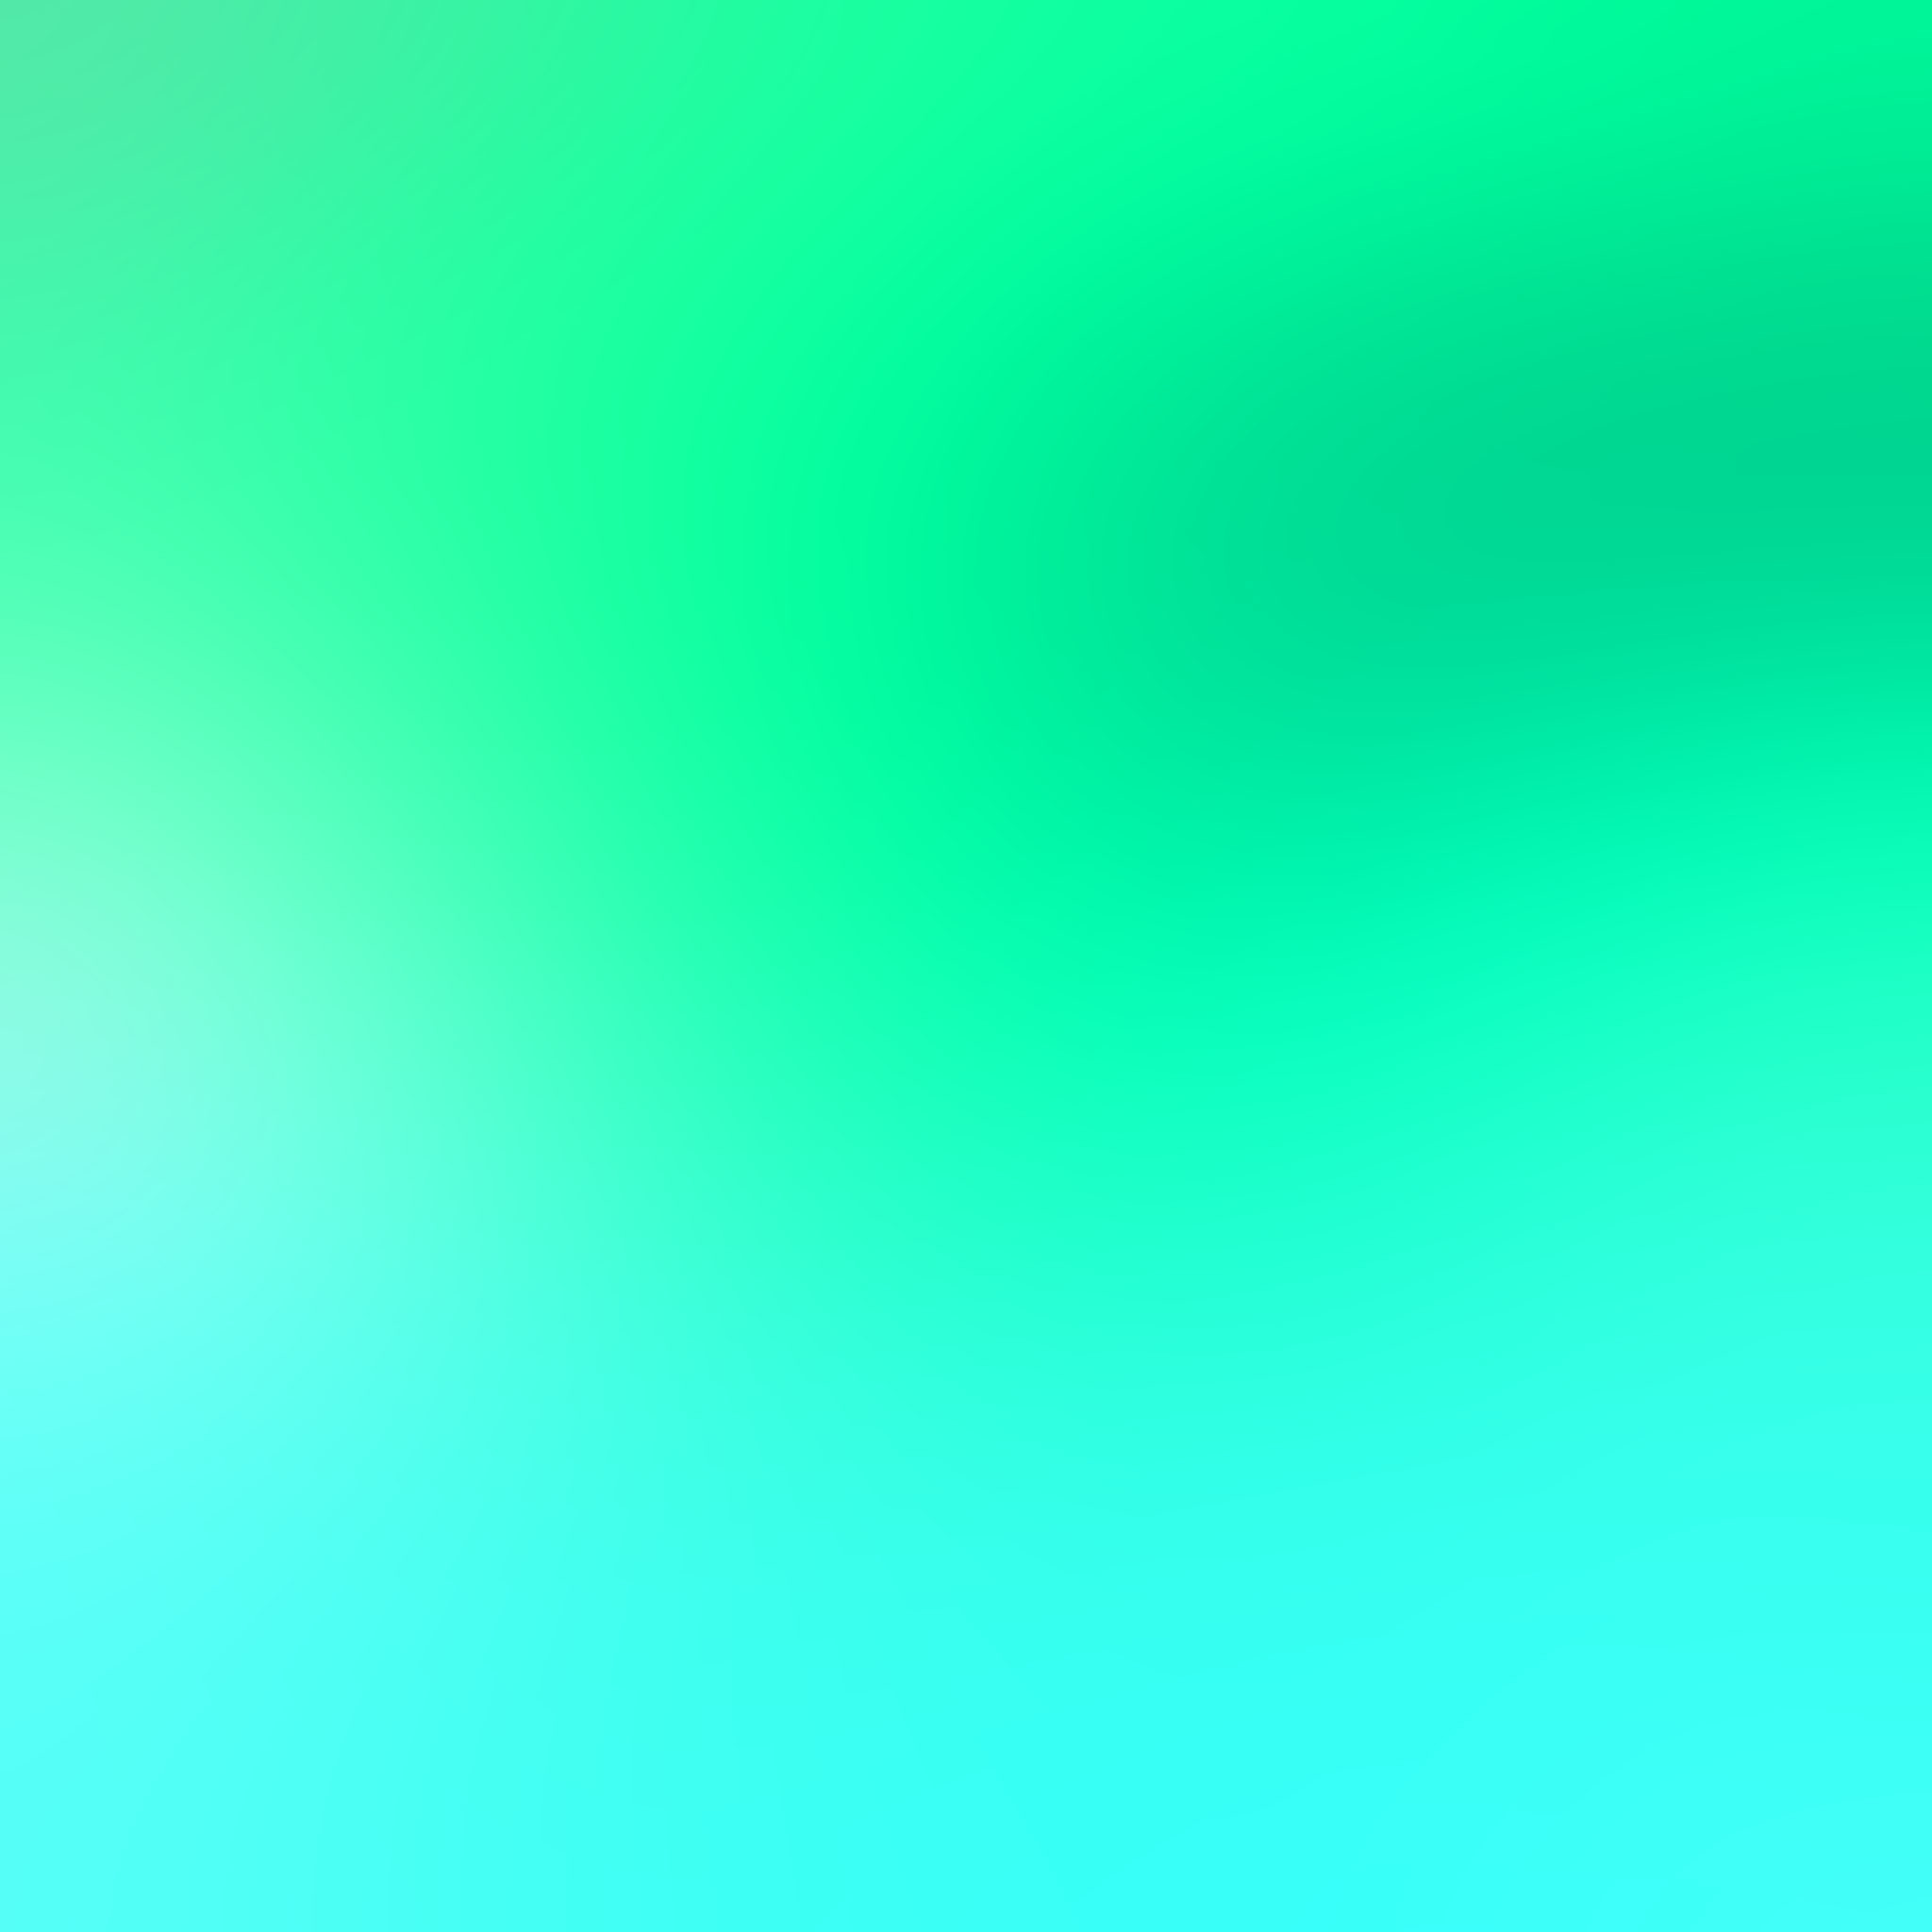 2048x2048 File: Lime Green HQ Definition.jpg | Ivonne Mcneel |  px ...